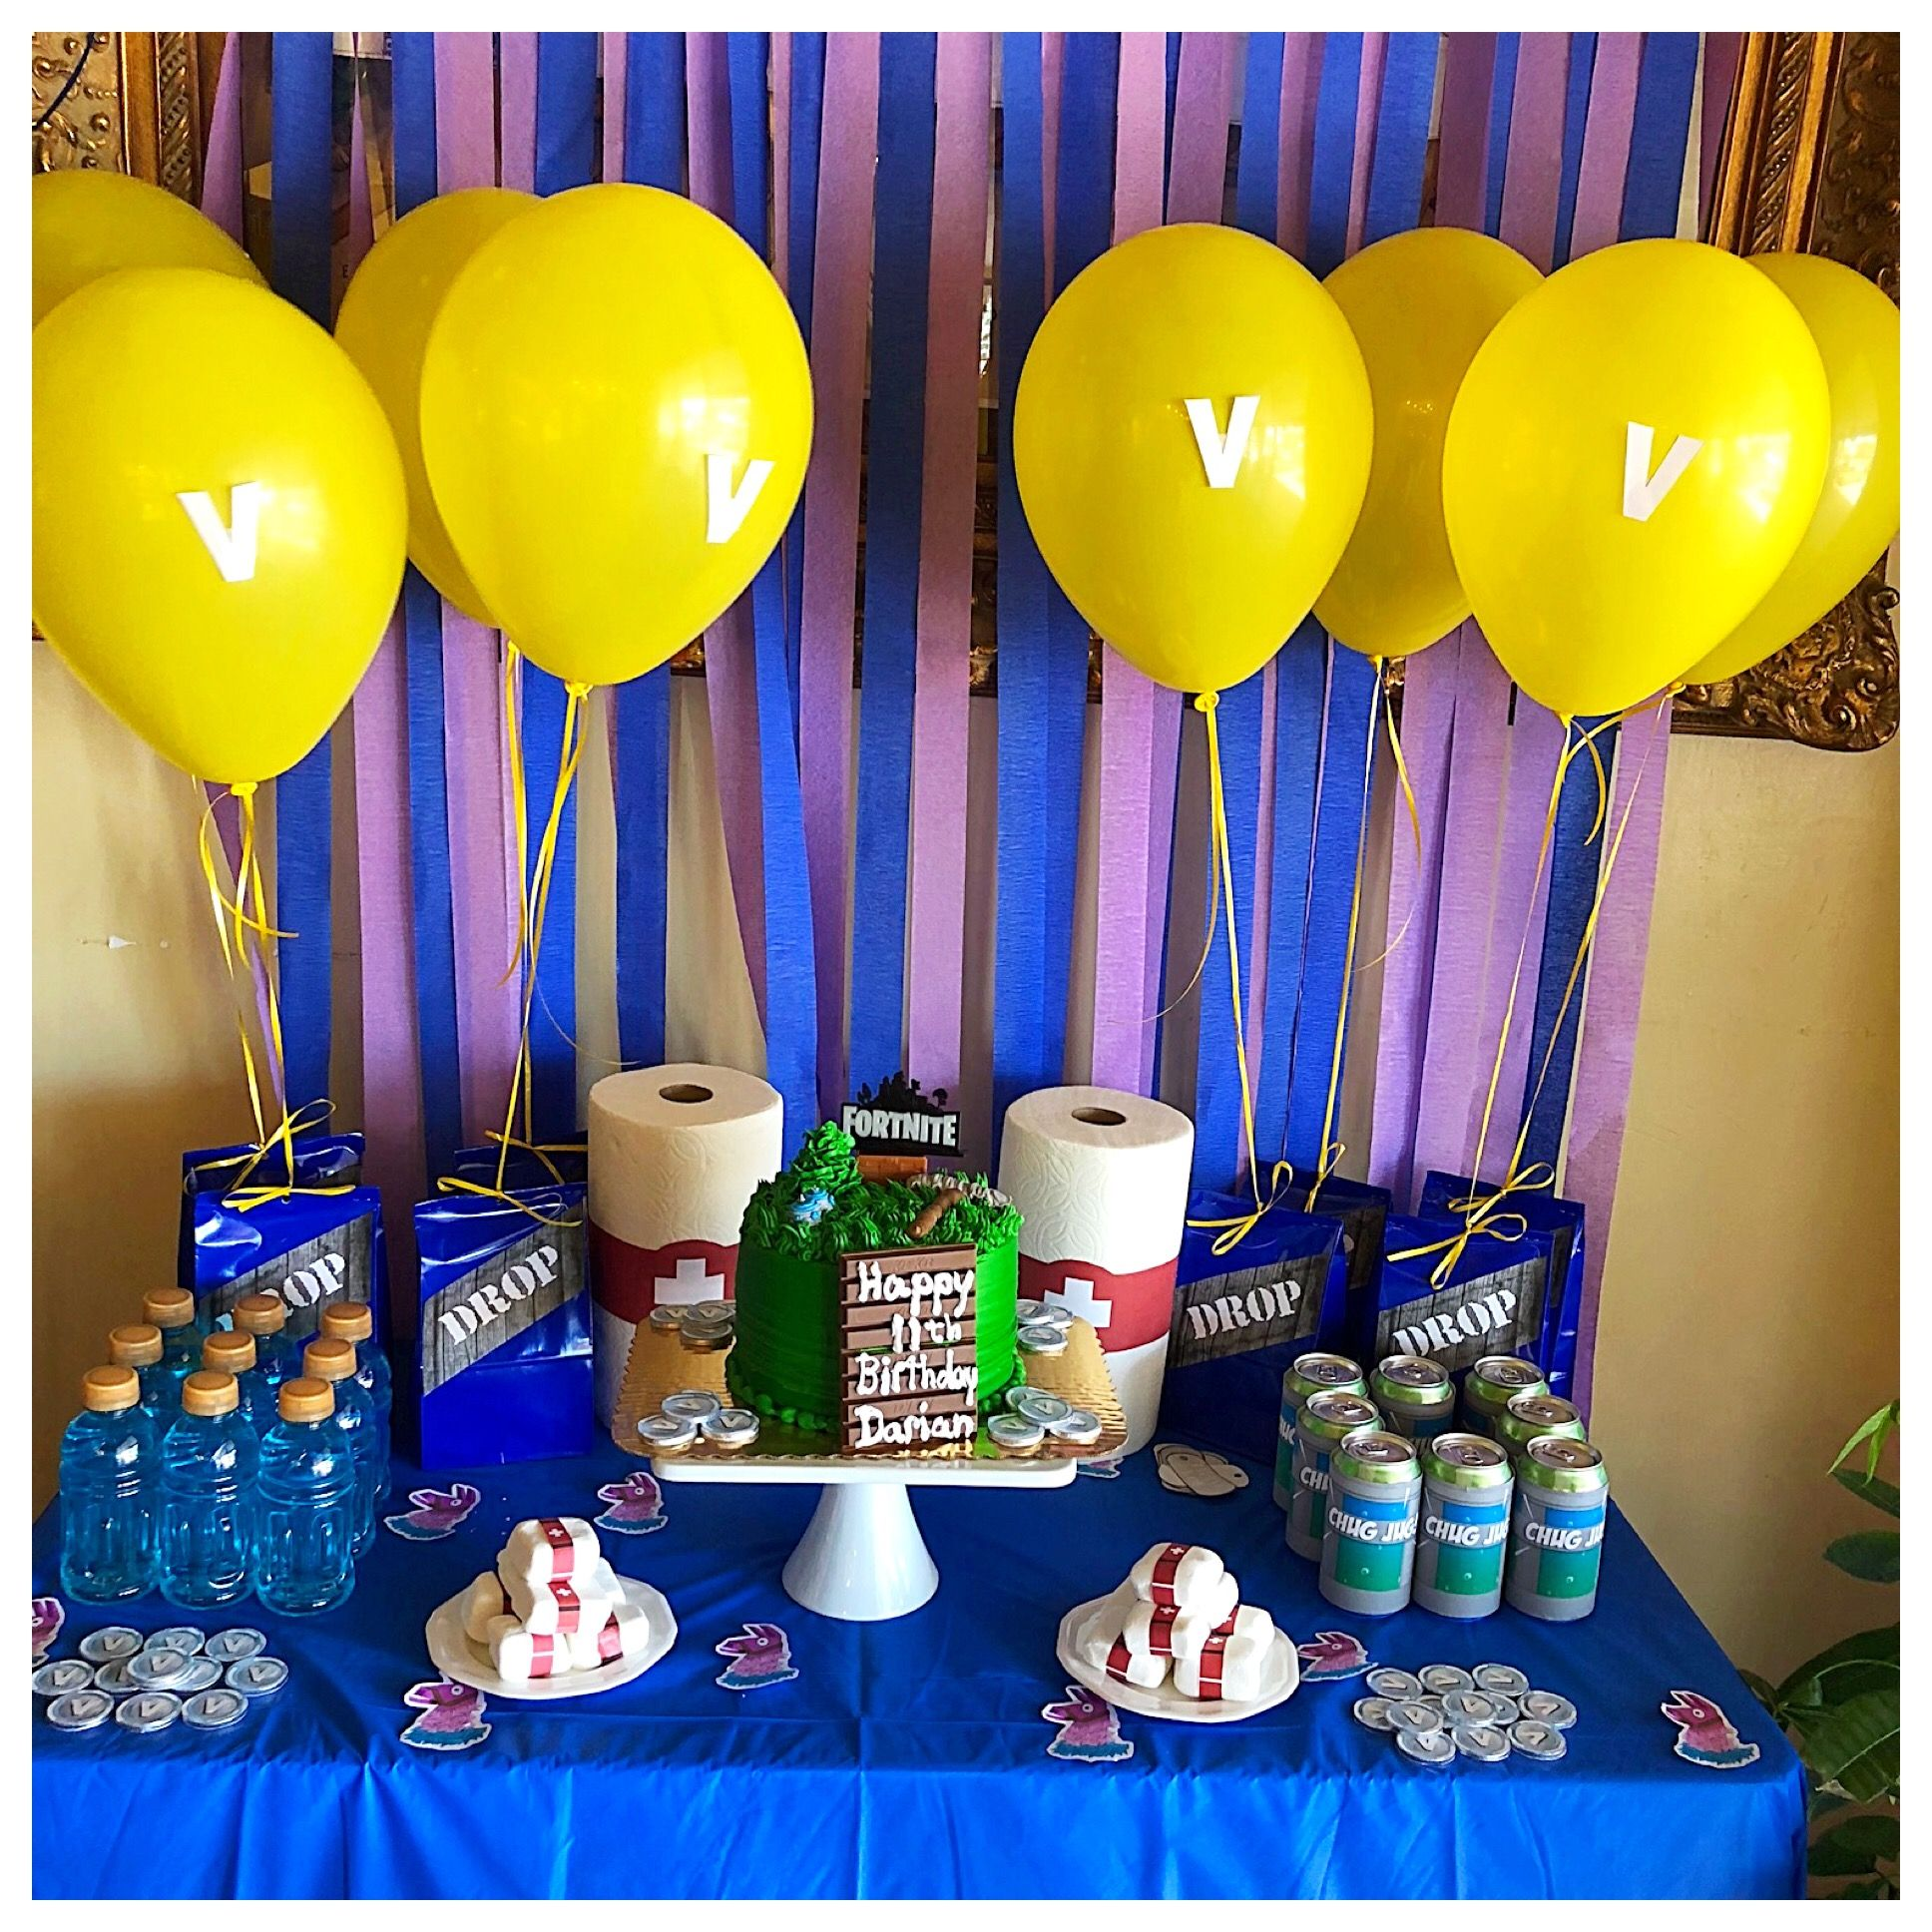 Fortnite Party Decor Birthday Party Planning Birthday Party Decorations 9th Birthday Parties